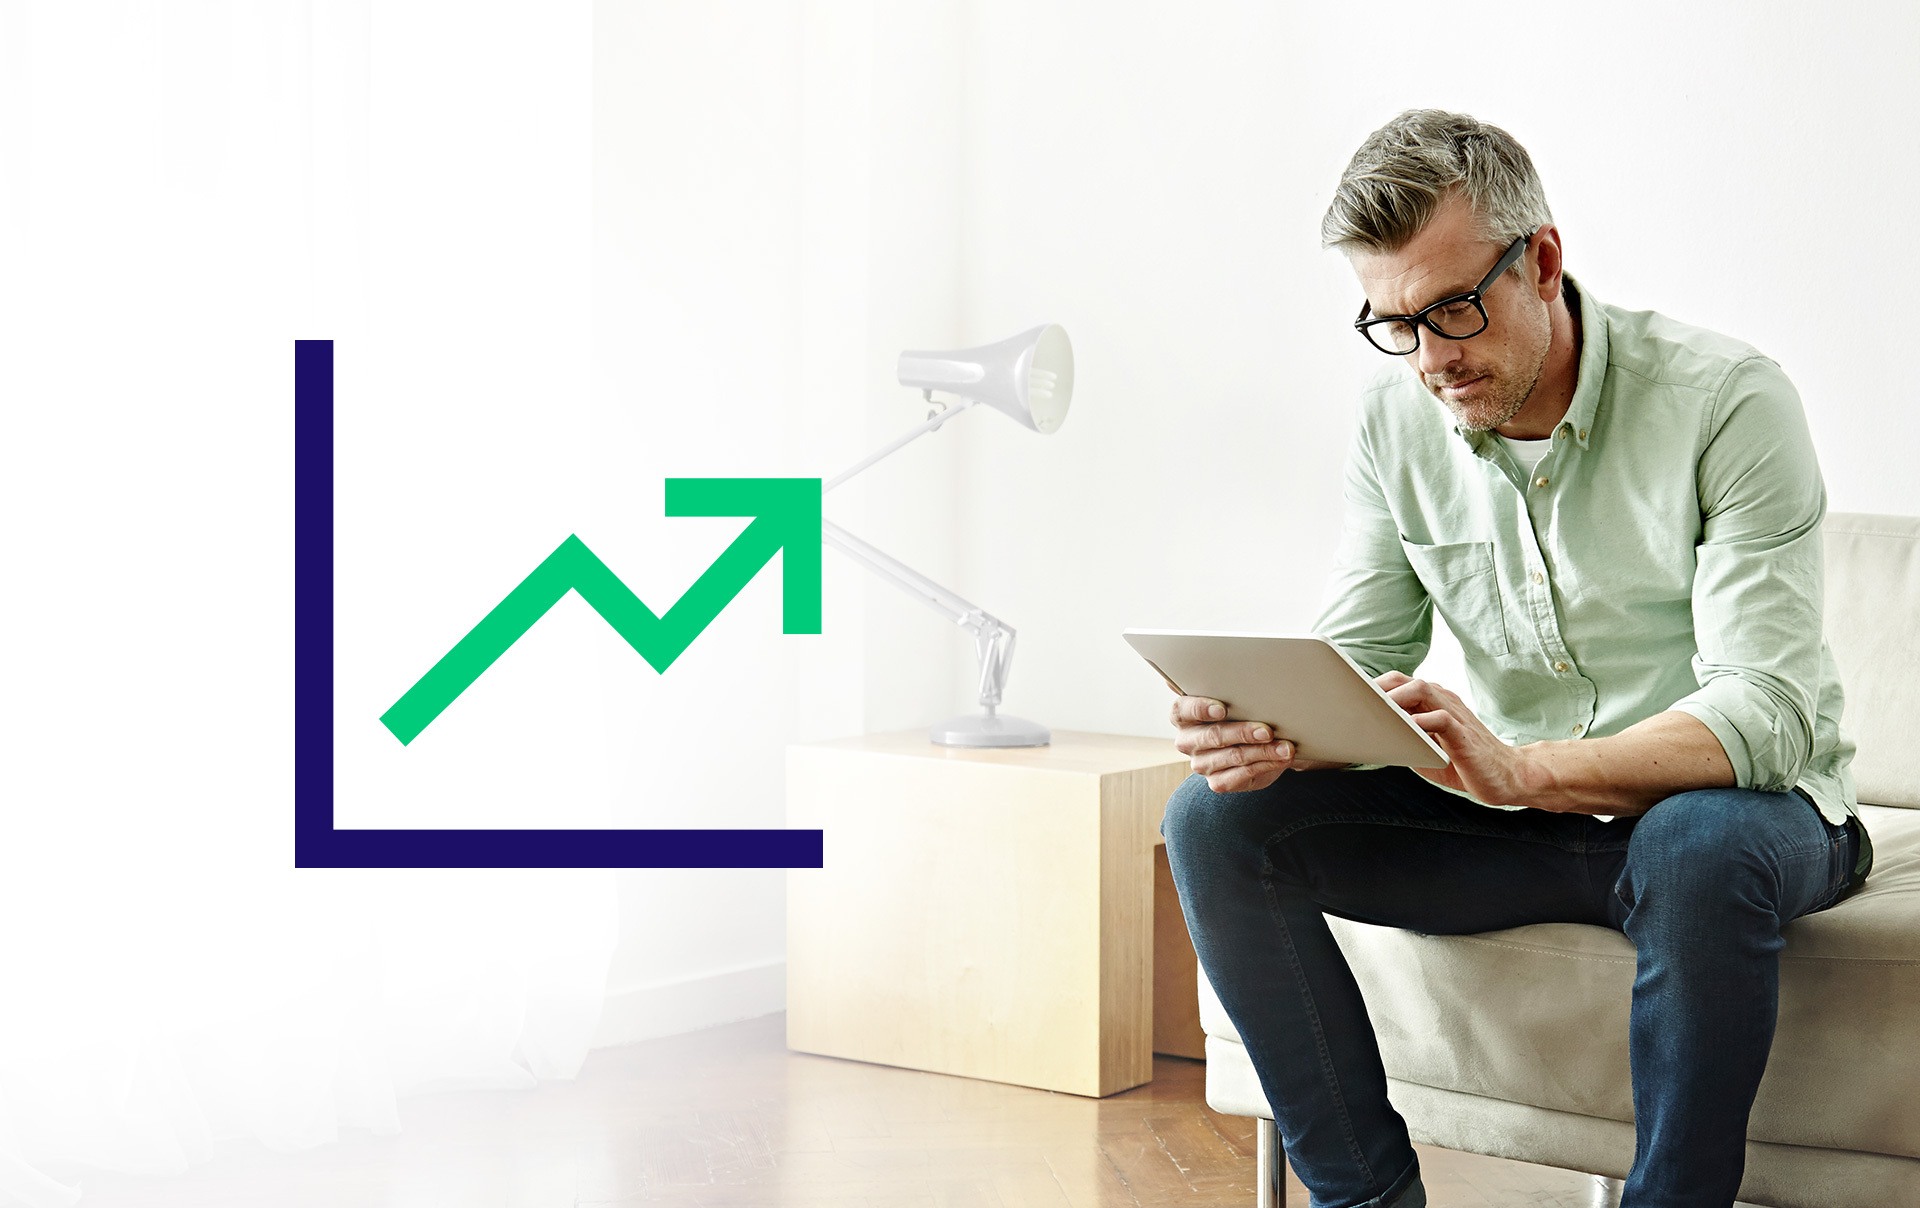 A man works on his tablet and a graphic of a line graphic trends upwards